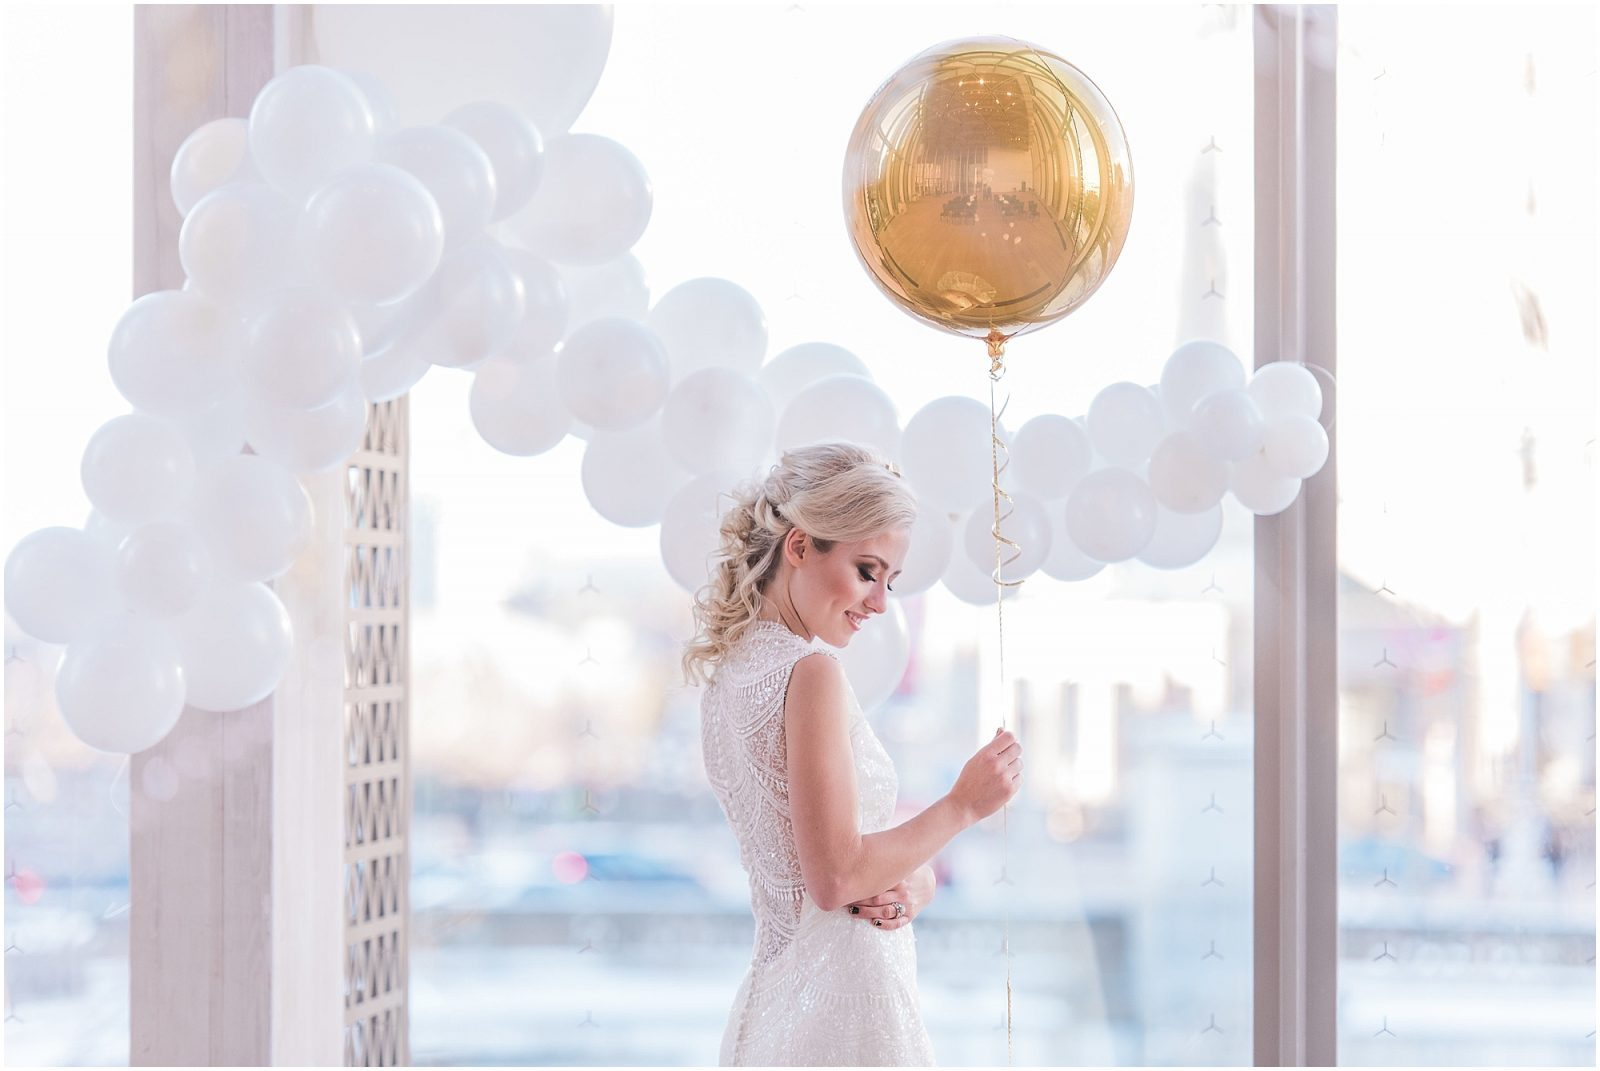 Wedding O'Born Room NAC Ottawa - New Years Glam Wedding Inspiration - bright and airy ottawa wedding photographer - elegant bride holding balloon